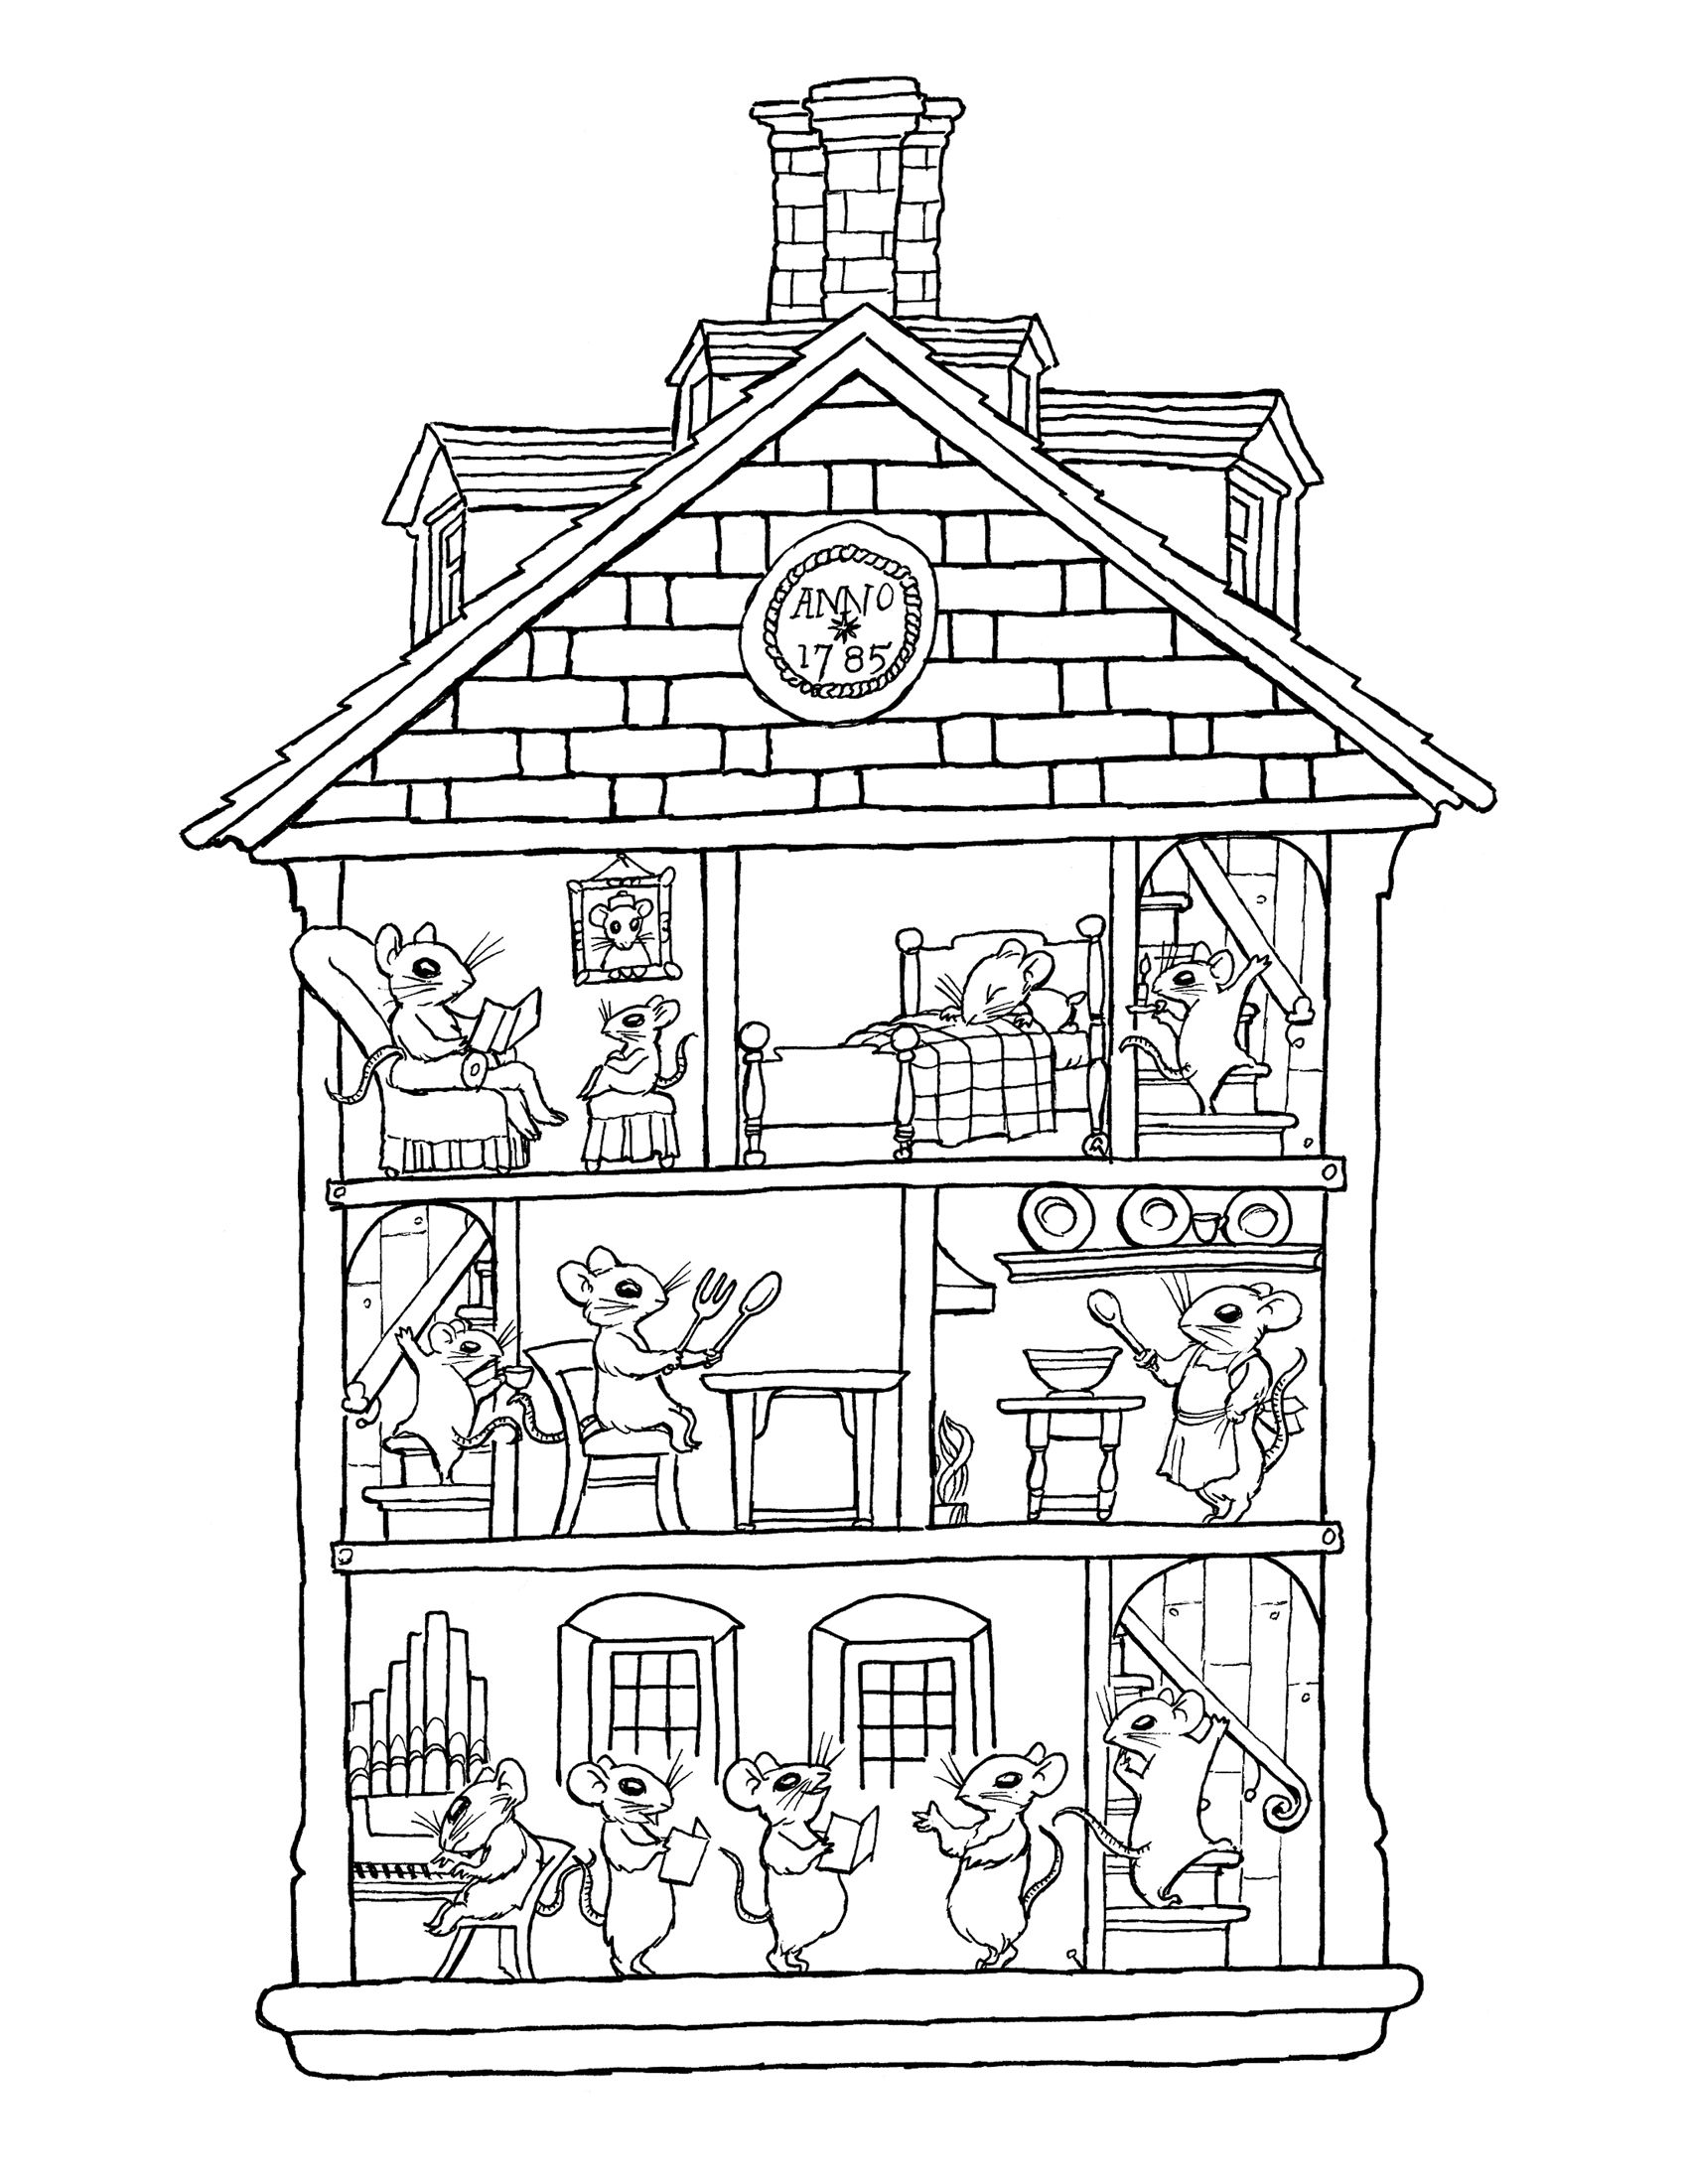 Free coloring pages houses and homes - Houses And Homes Coloring Pages For Preschool Kindergarten And Elementary School Children To Print And